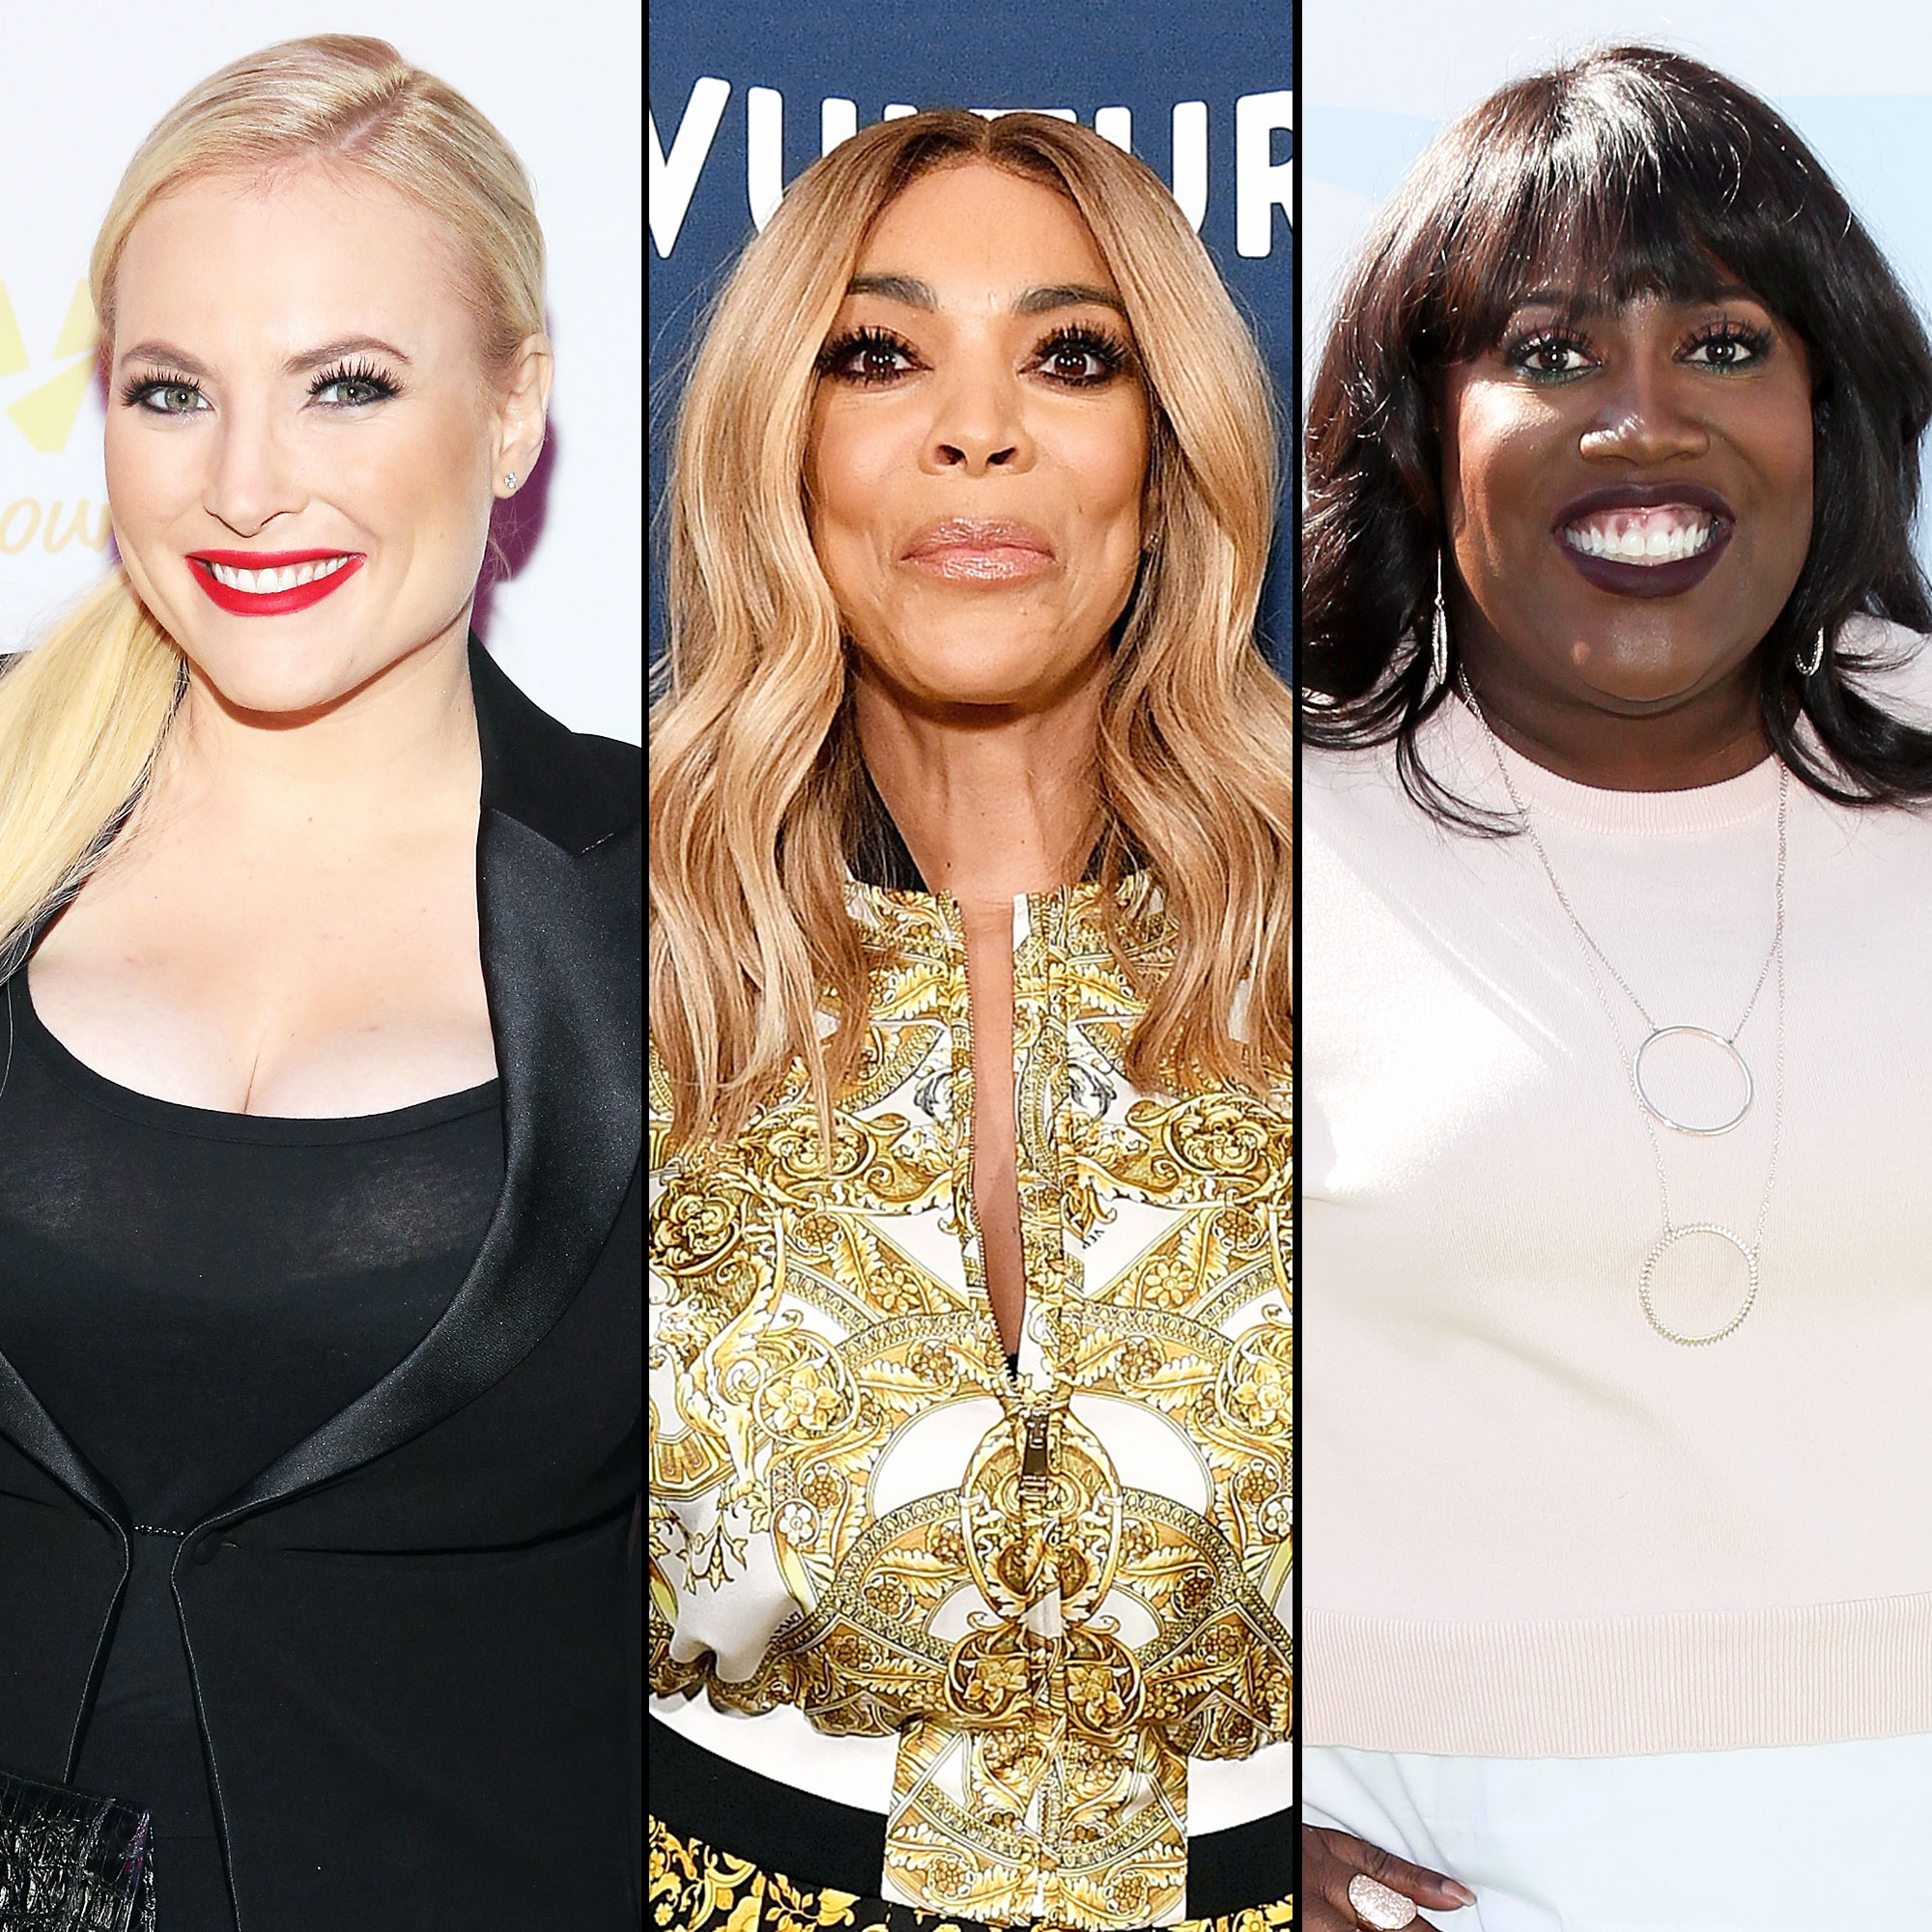 The View Meghan Mccain: Wendy Williams Gets Support From 'The View,' 'The Talk